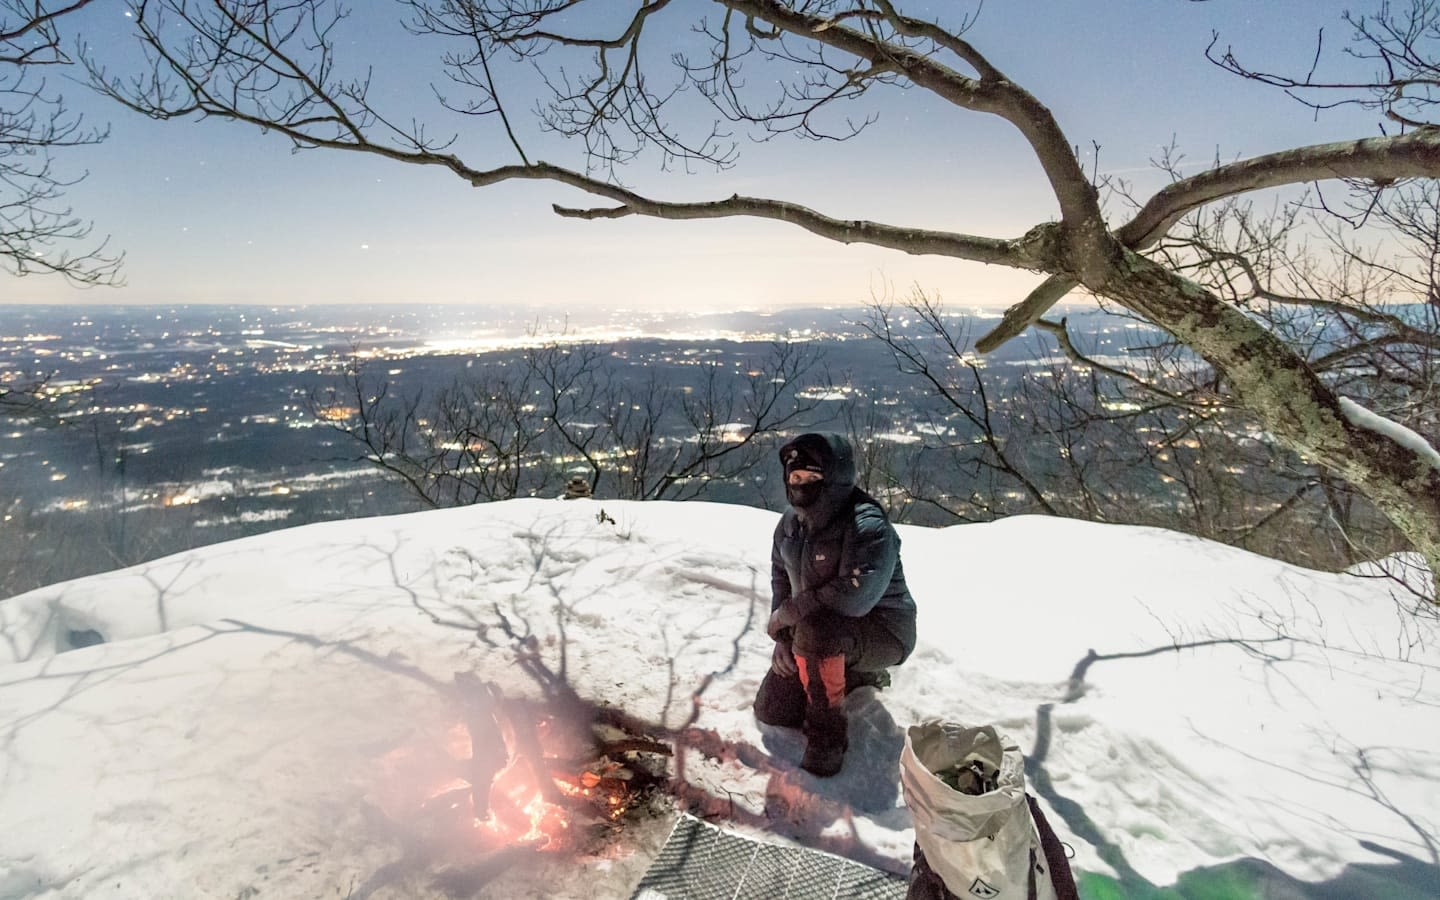 Kate Stone sat on a snowy mountain top next to a small fire